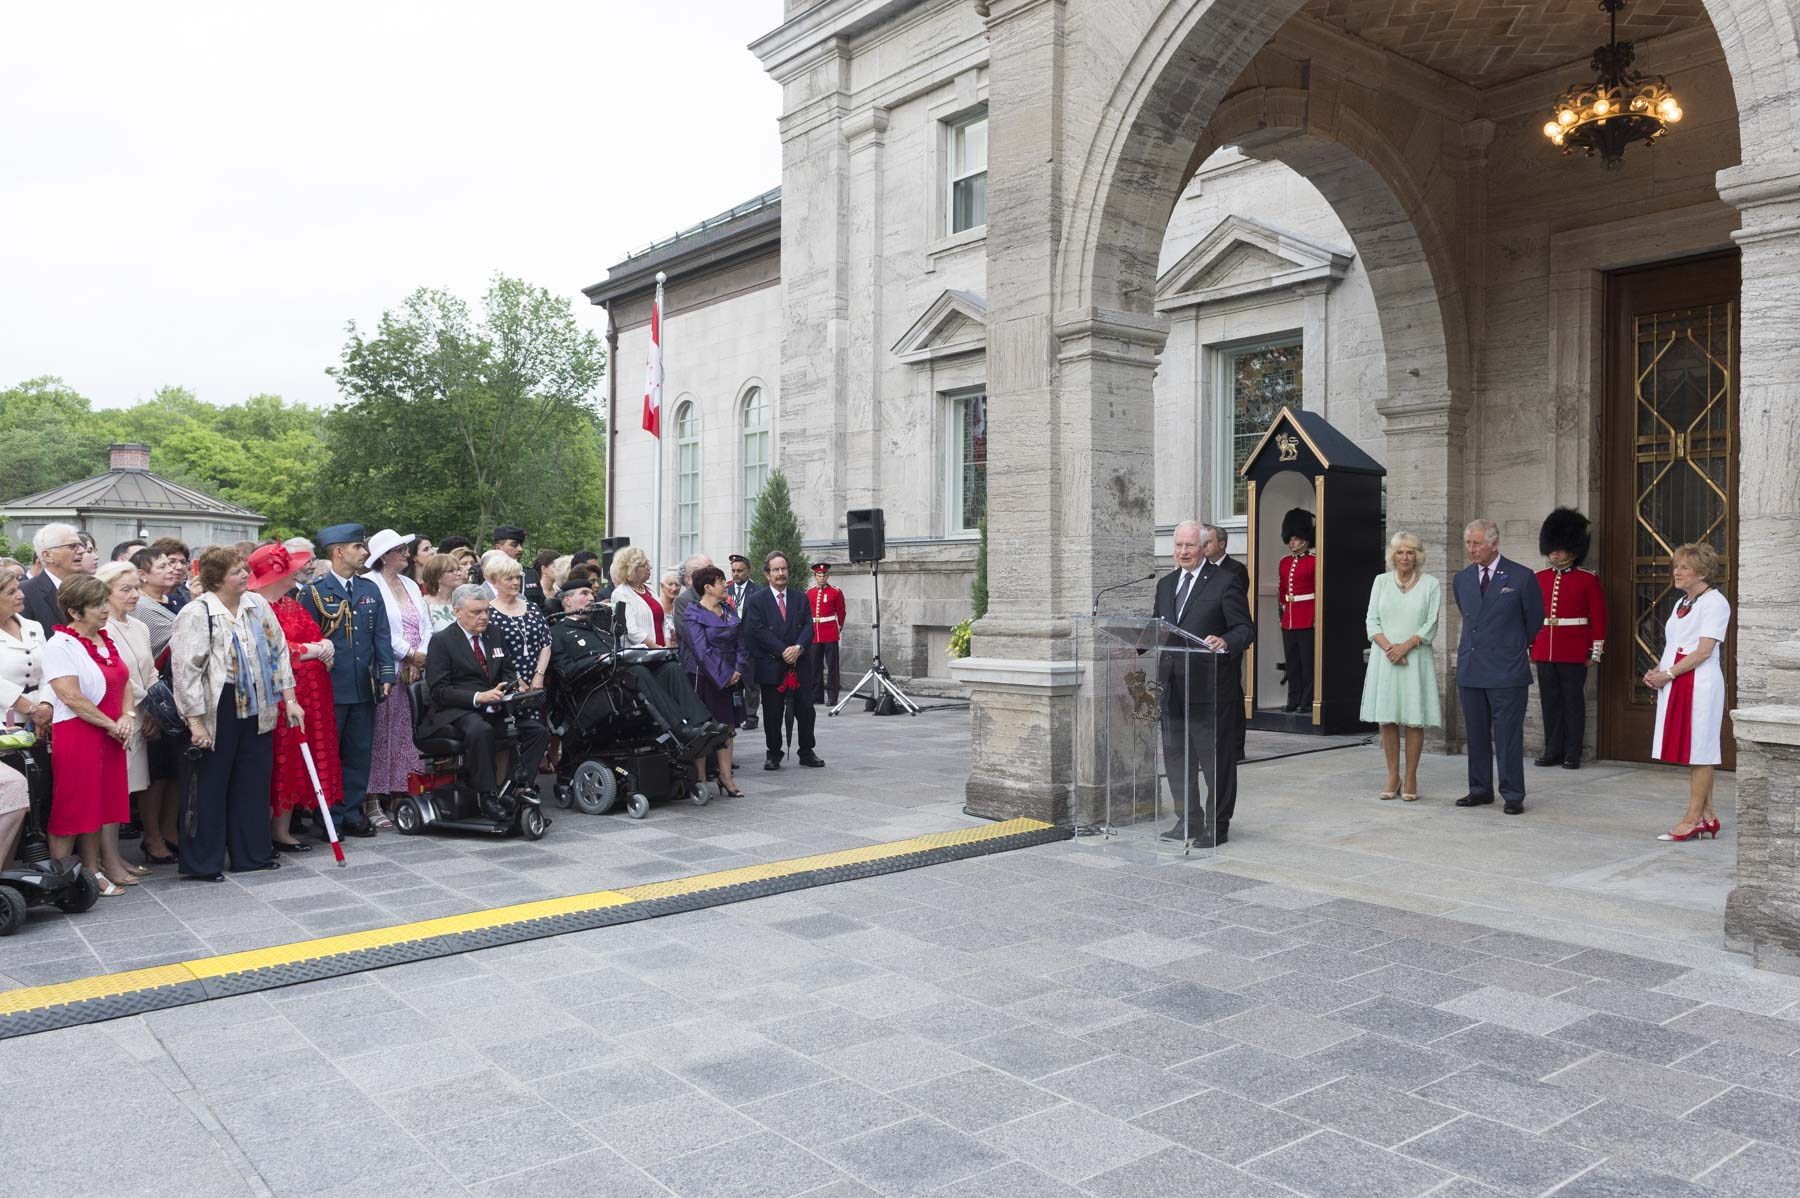 Following the tree planting ceremony, Their Excellencies and Their Royal Highnesses inaugurated The Queen's Entrance at Rideau Hall with the unveiling of a plaque and by symbolically opening the new doors.